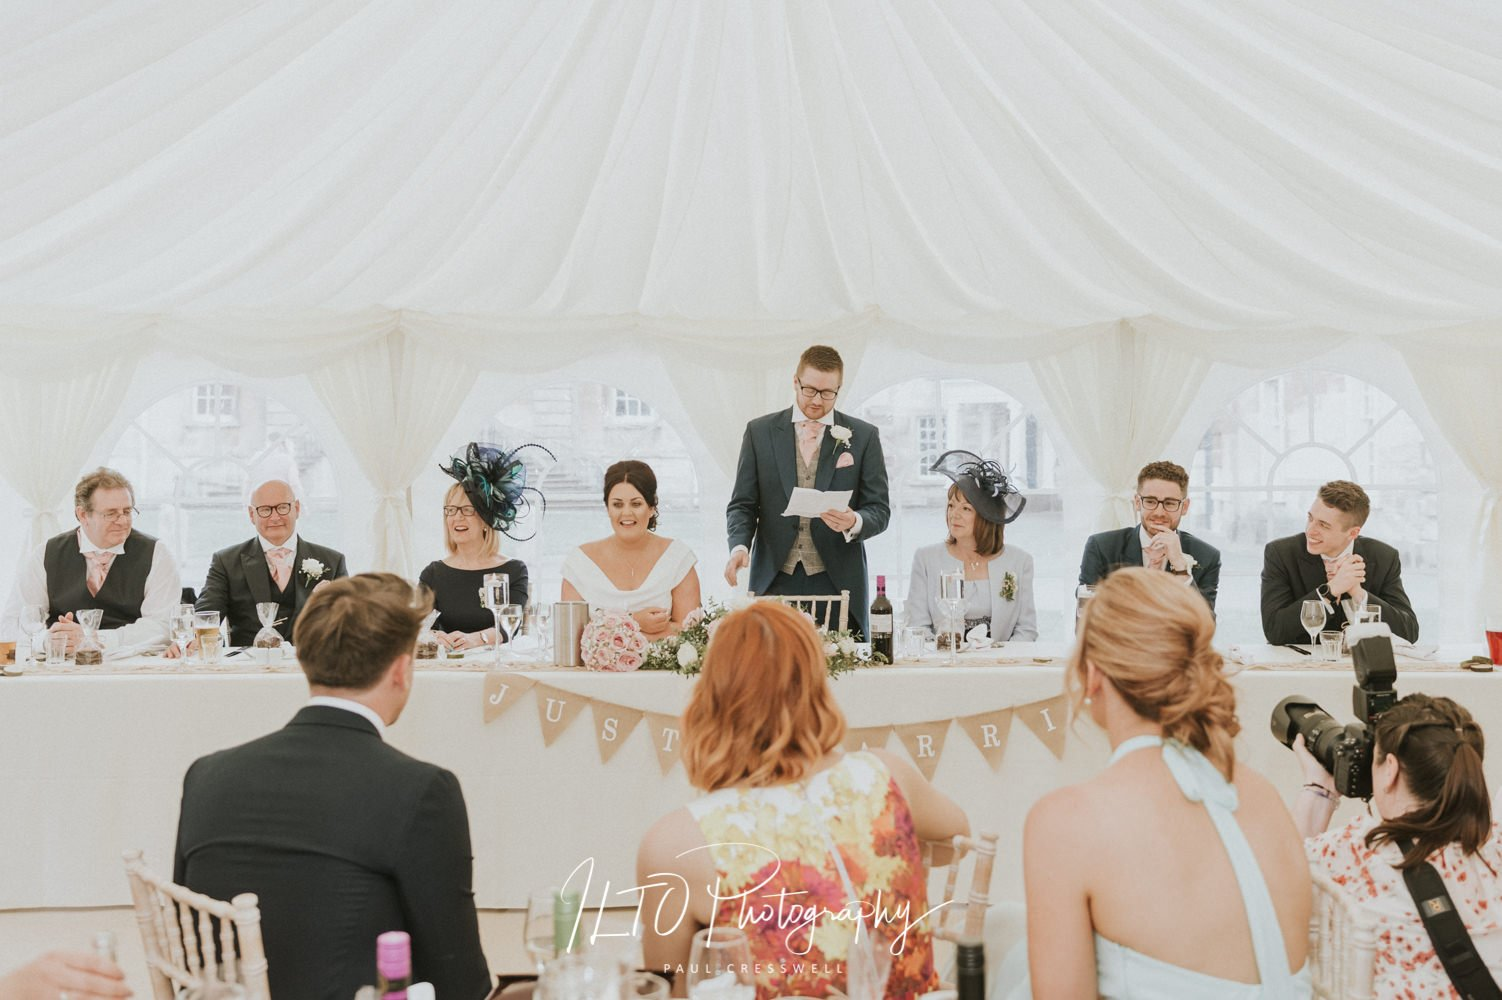 Marquee wedding cusworth hall yorkshire affordable photographer